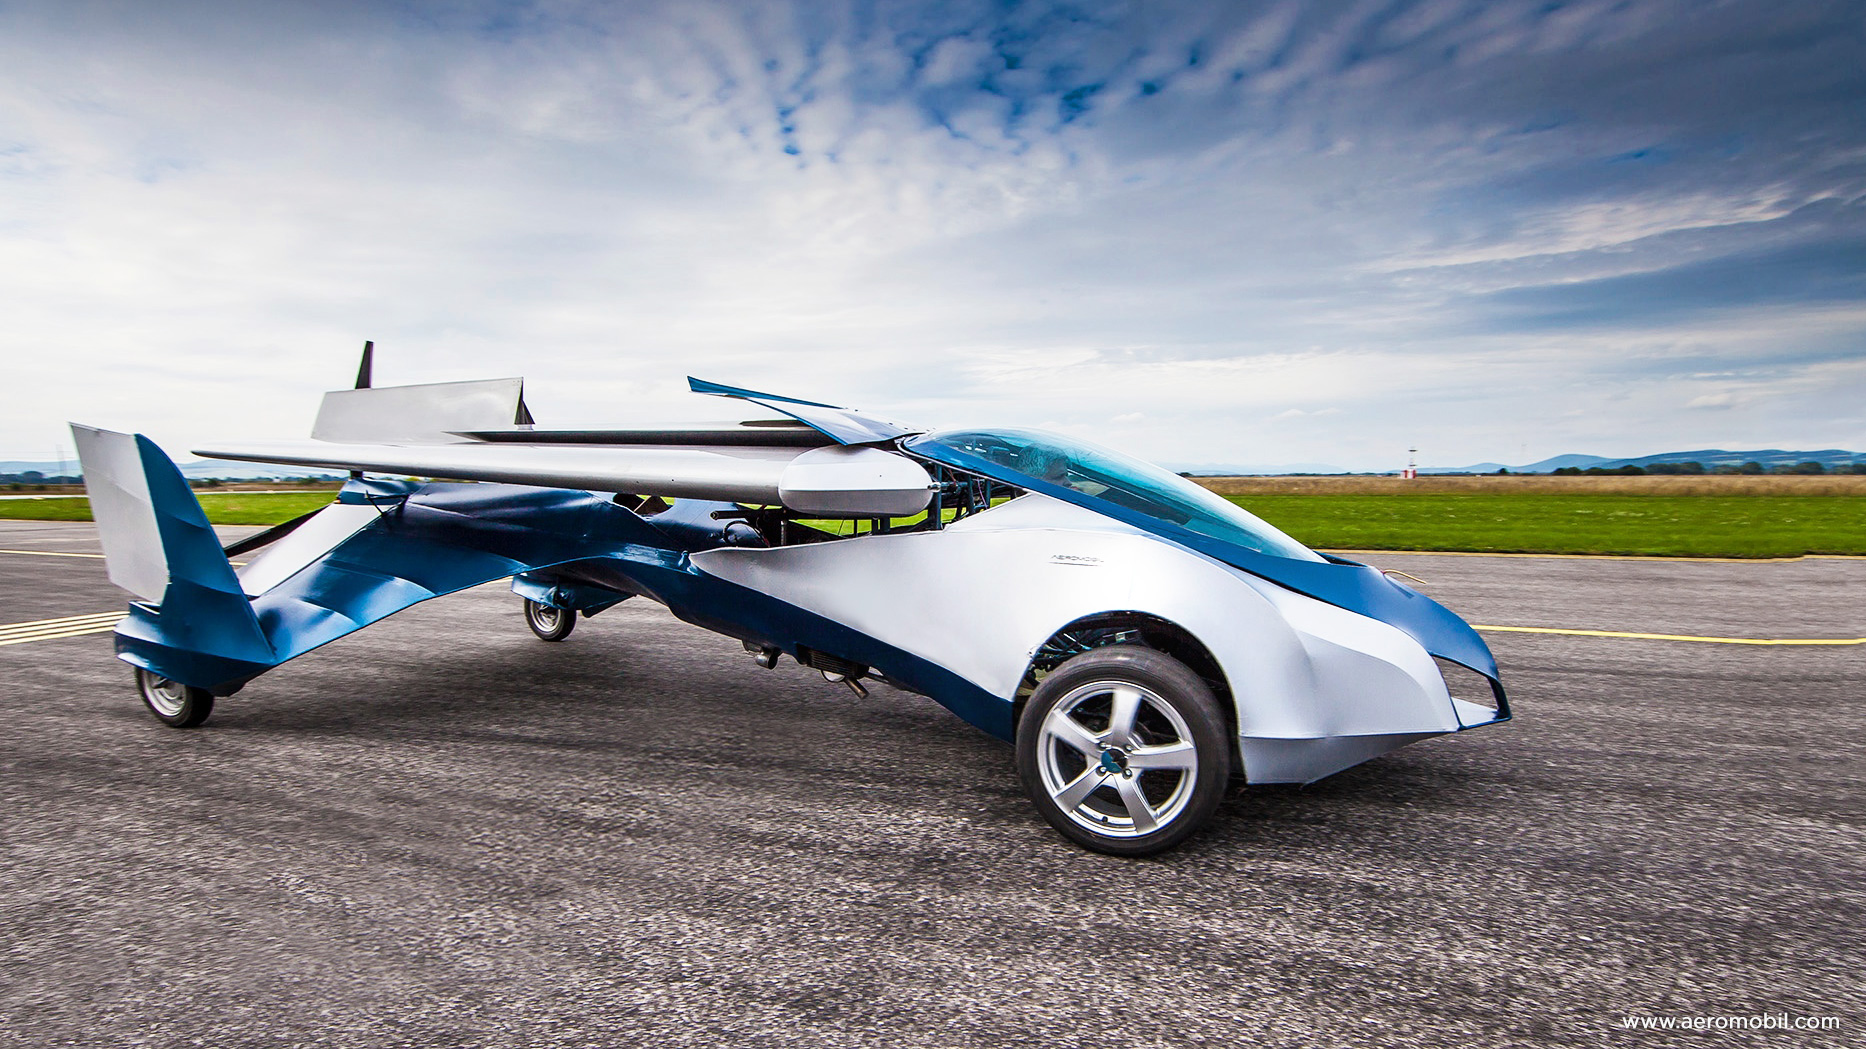 You May Buy This Amazeballs AeroMobil Flying Car In 2017, Maybe Wave 'Hi' To The Jetsons.